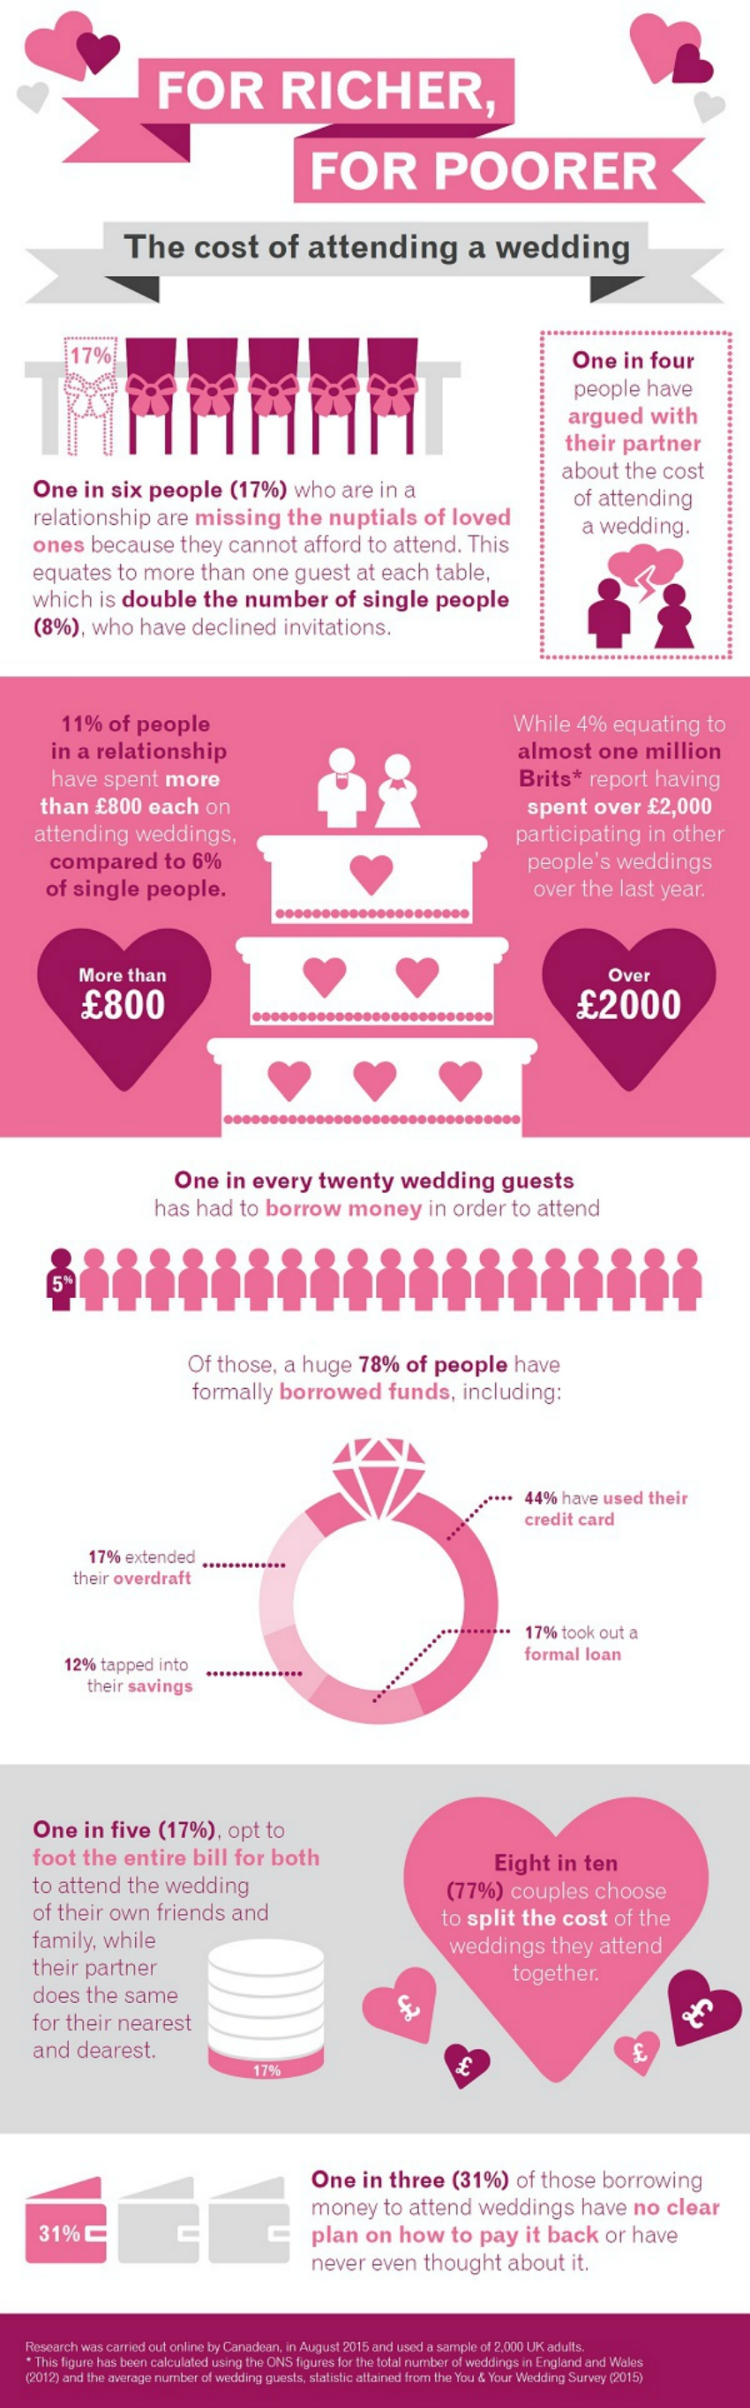 How Much Money For Wedding Gift 2015 Uk : how much money do you spend as a wedding guest, how much does it cost ...